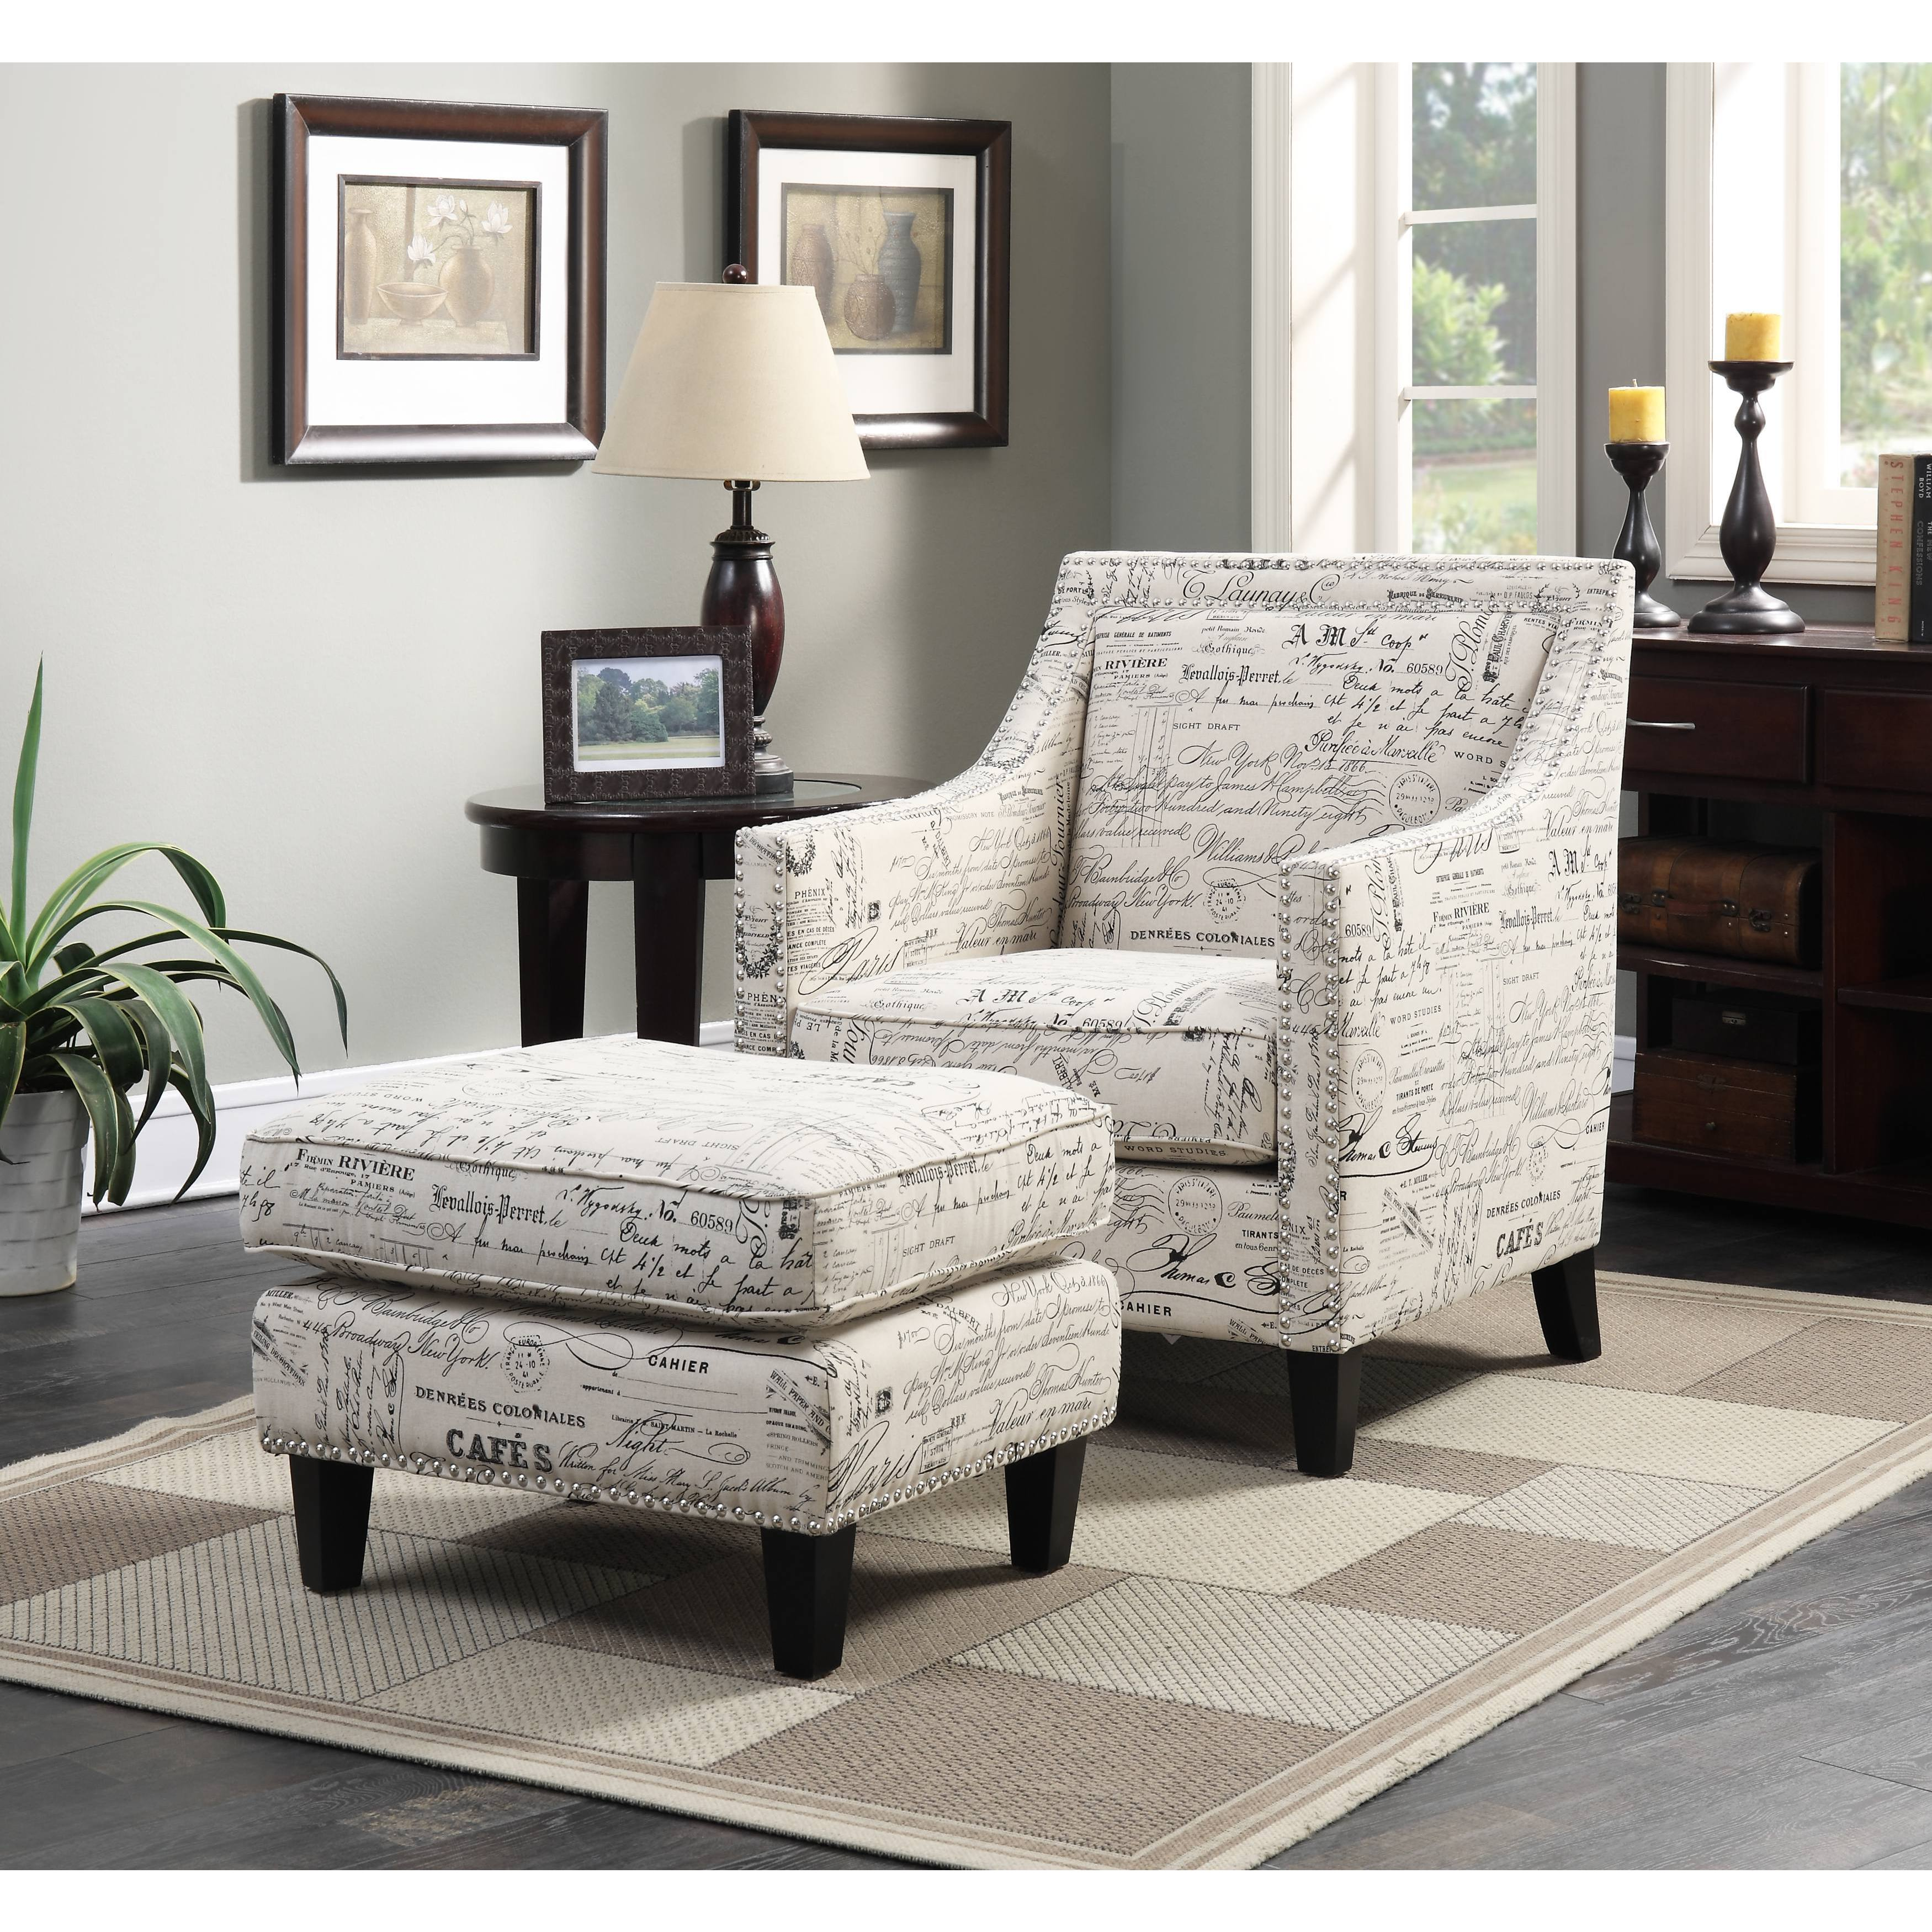 Clay alder home rockville armchair ottoman in french script